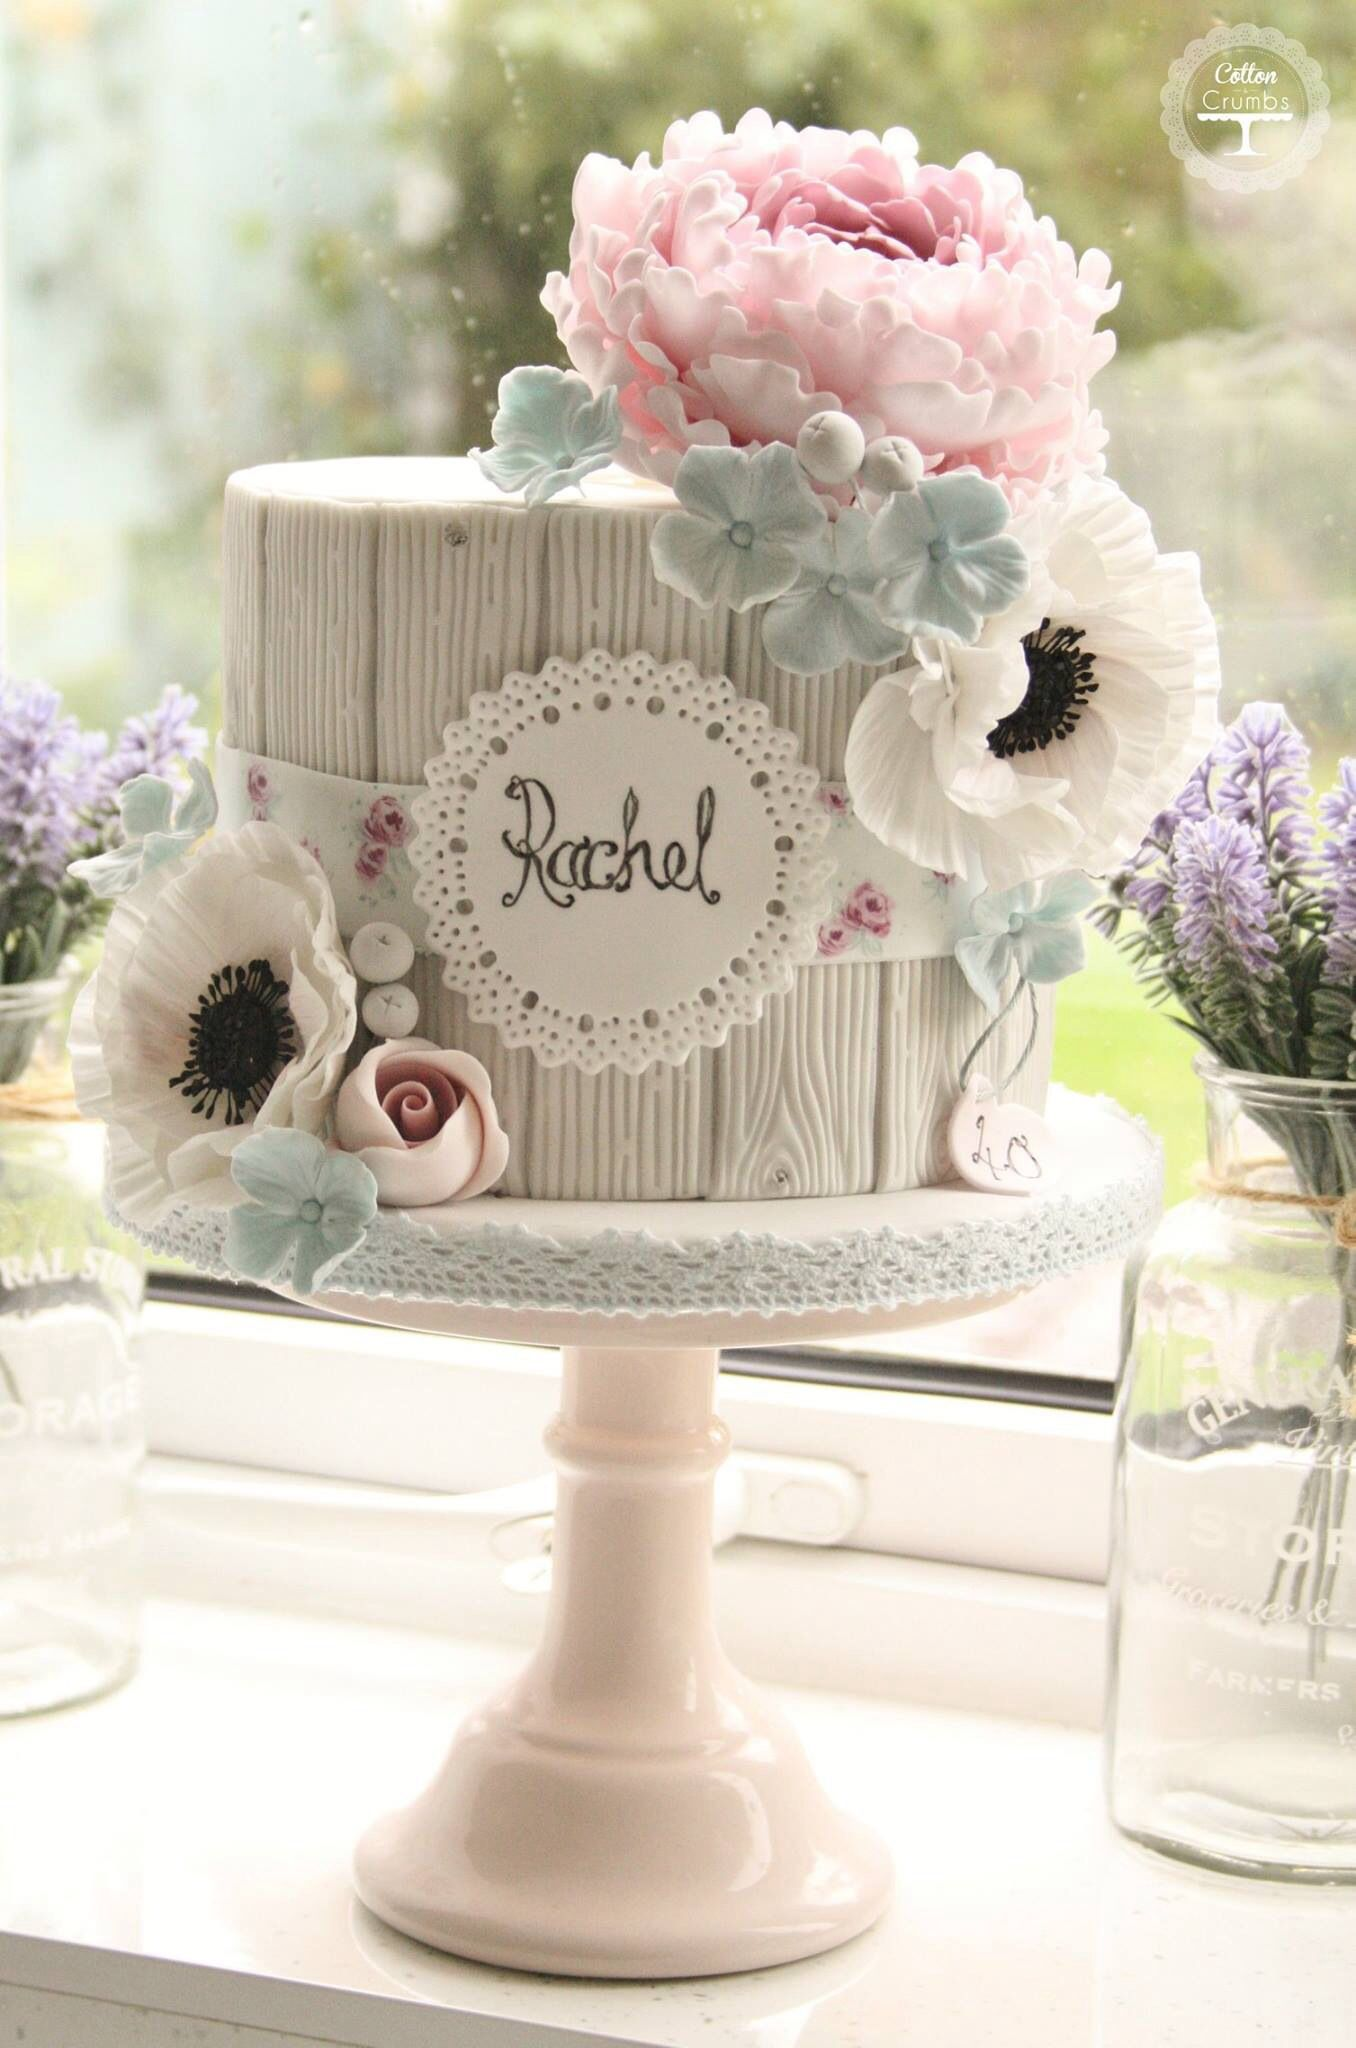 Pin by Jeslyn on Pretty cupcake (With images) Beautiful